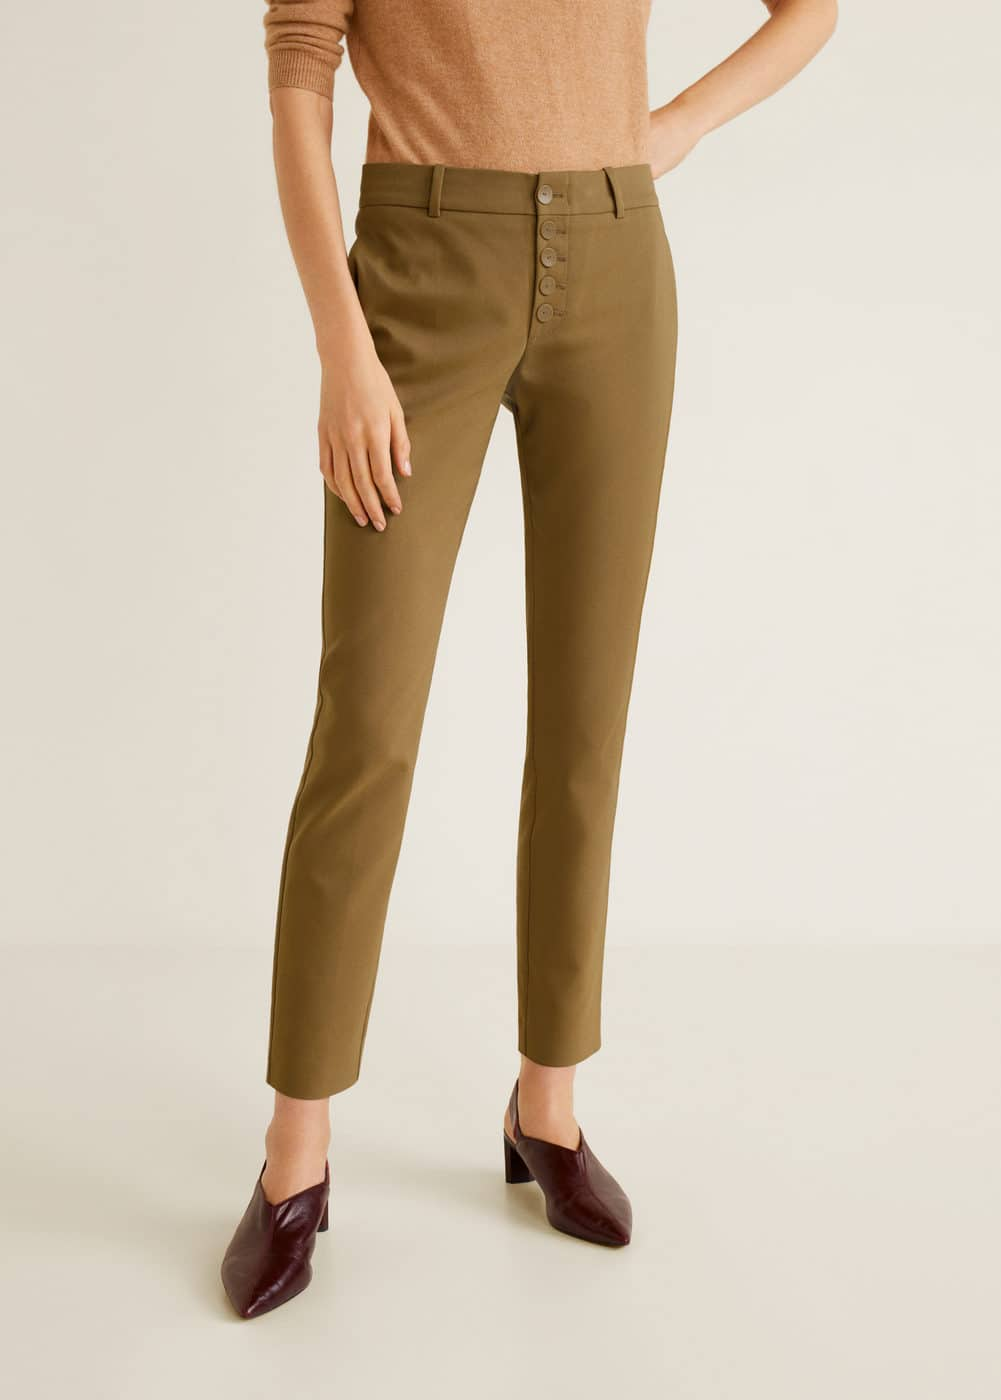 Mango - Buttons cotton trousers - 1